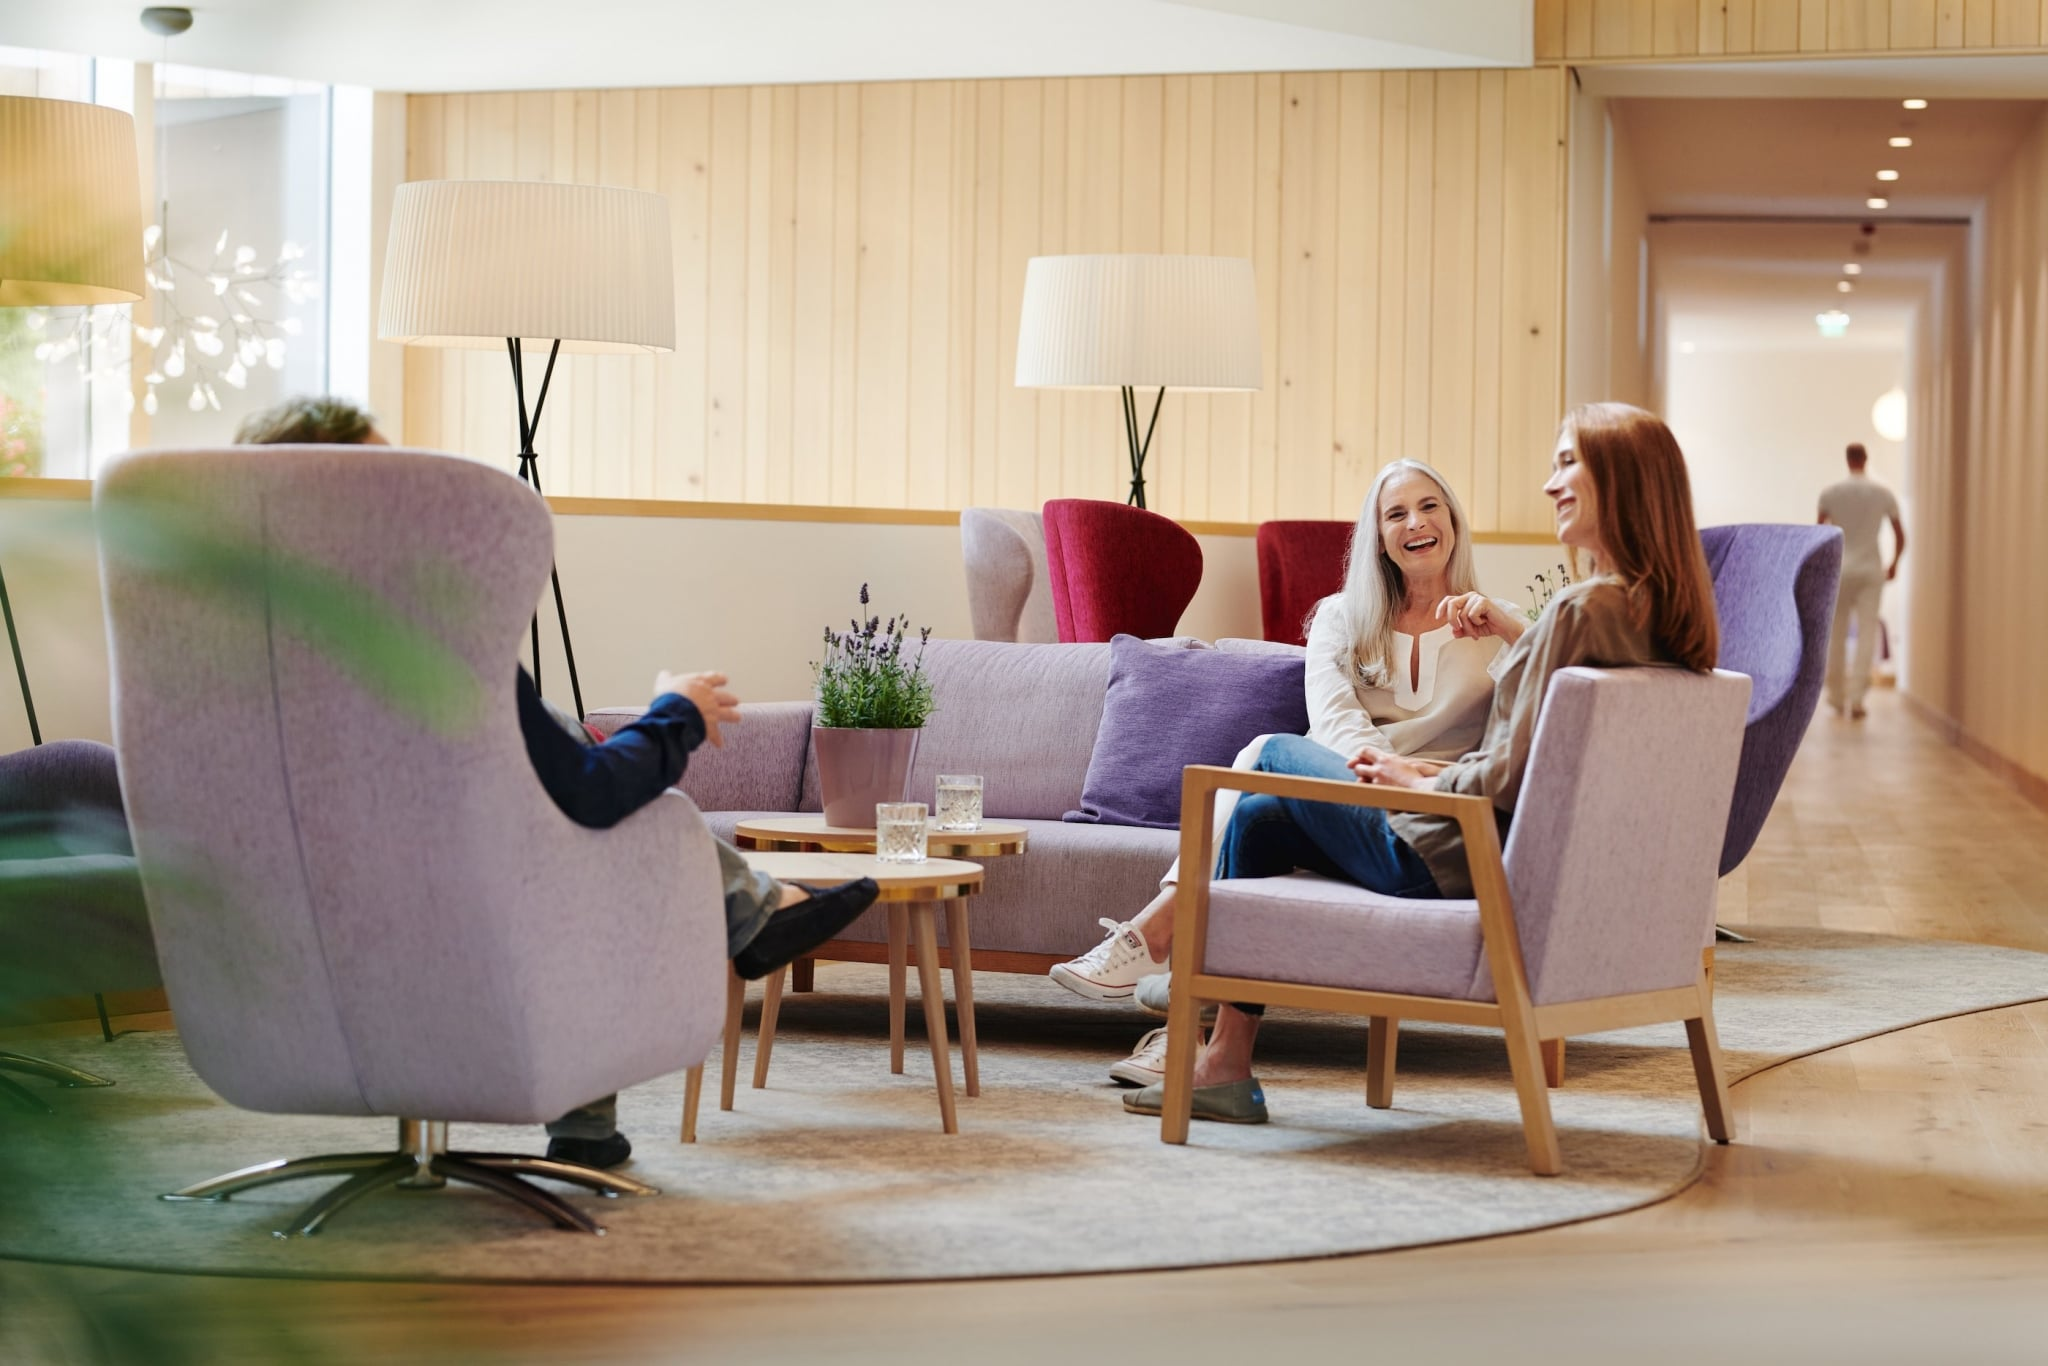 Two women sitting in modern purple armchairs at beautiful lobby at Medical Health Resort VIVAMAYR Altaussee smiling and having a chat